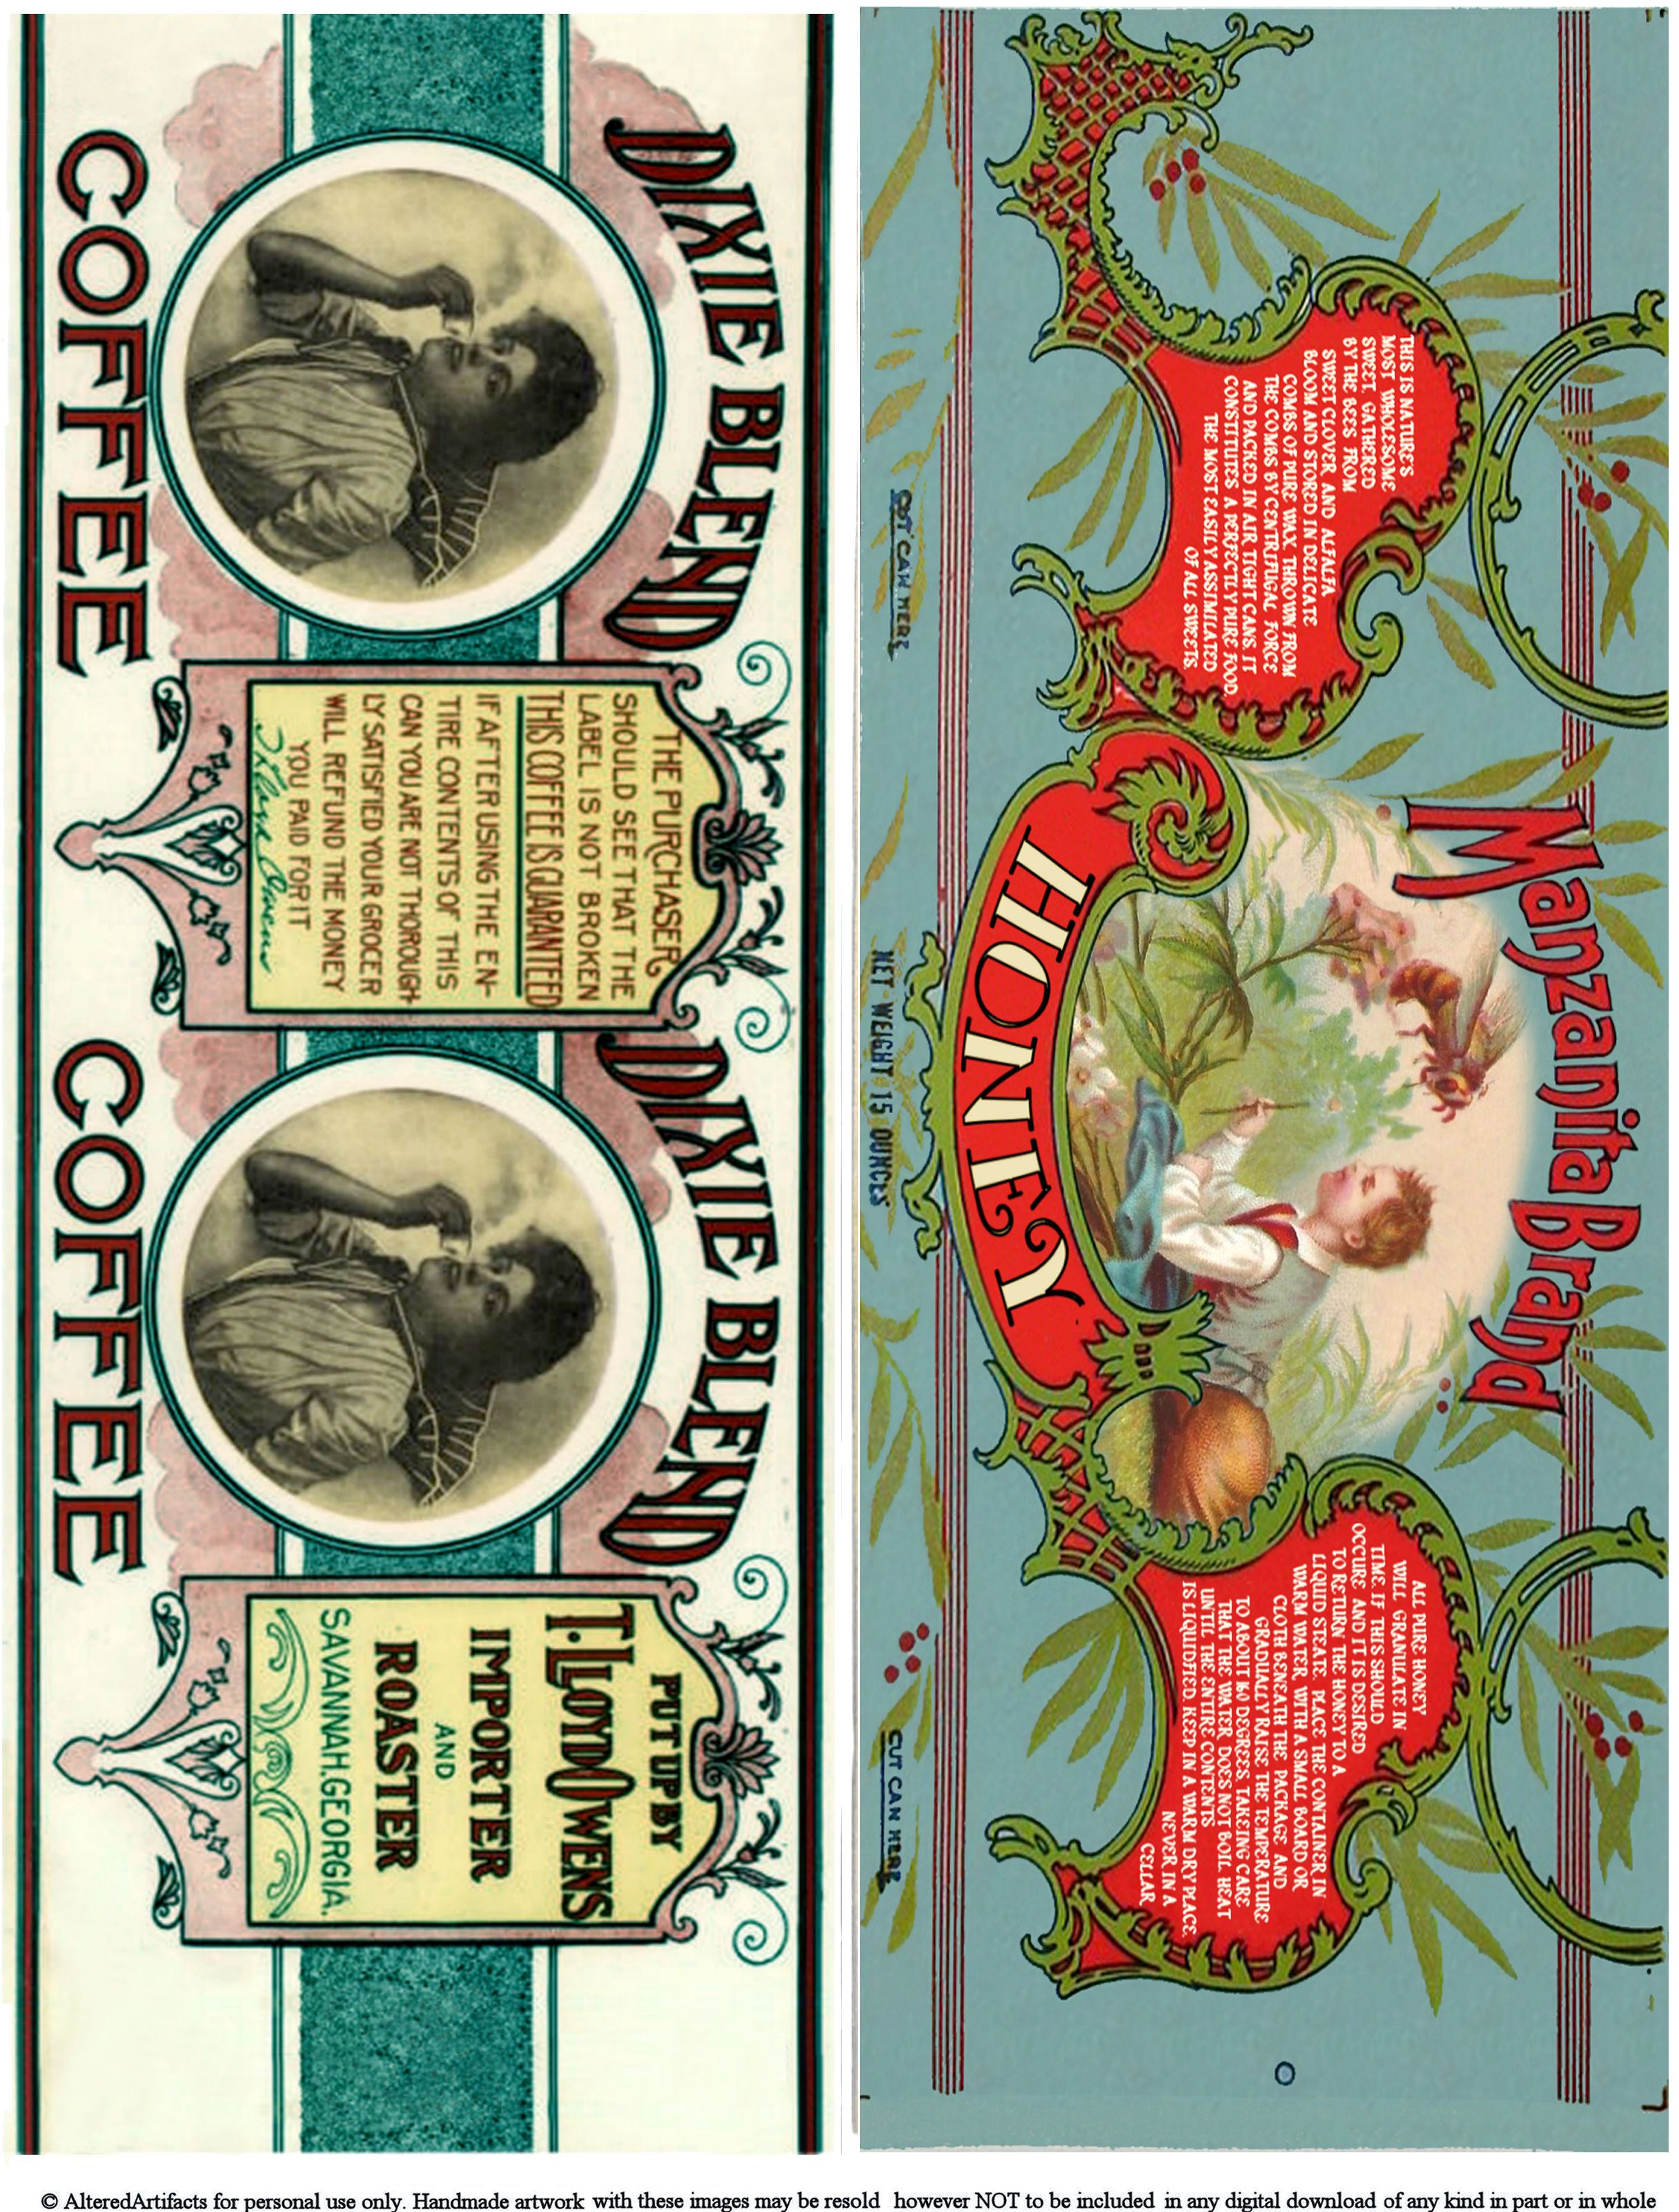 Free Printable Can Labels Vintage Brands Images For Decoupage And - Free Printable Old Fashioned Labels